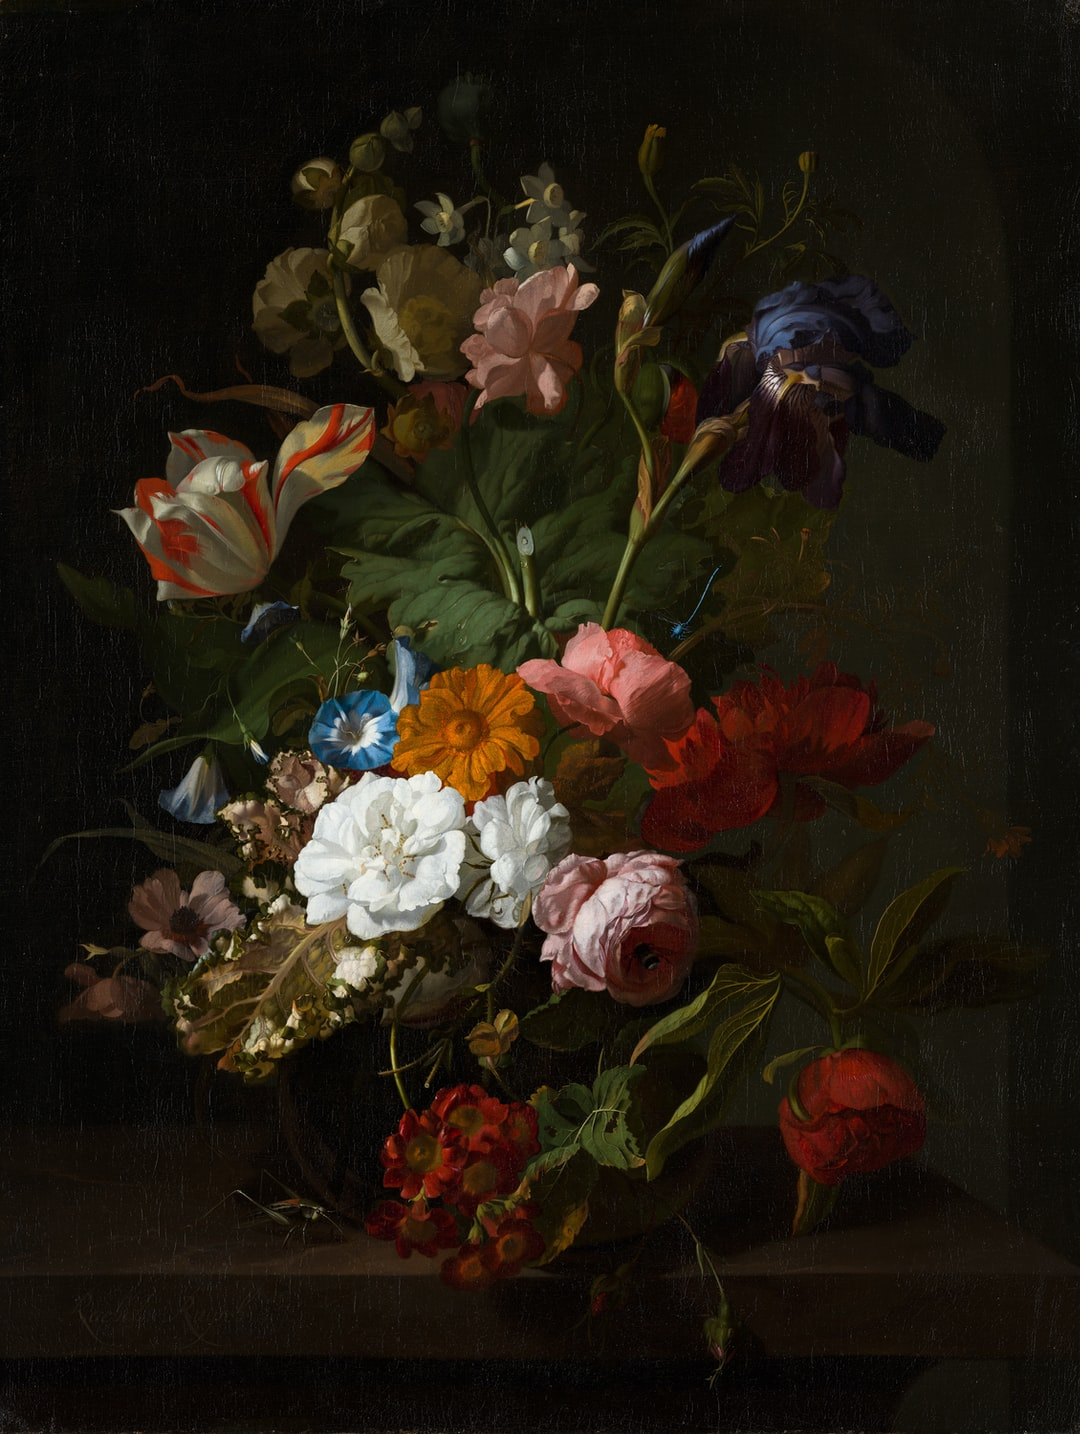 Vase with Flowers. Circa 1700.  Institution: Mauritshuis Provider: Digitale Collectie Providing Country: Netherlands PD for Public Domain Mark